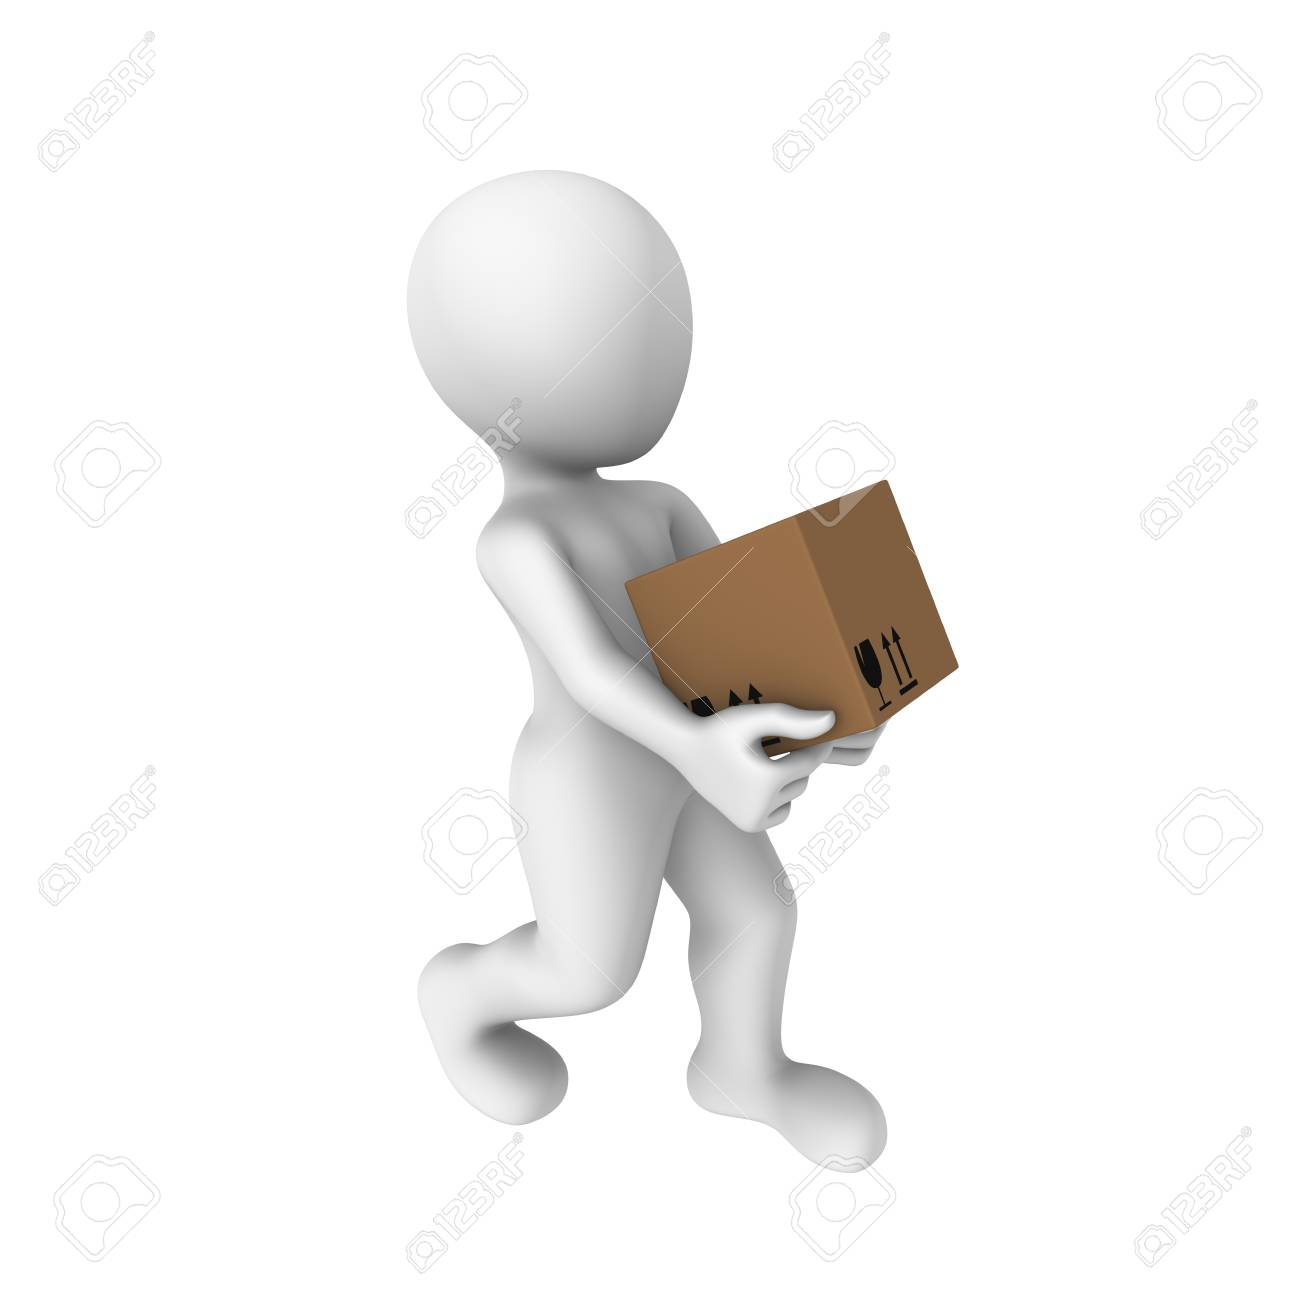 3d Clipart With Cargo Stock Photo Picture And Royalty Free Image Image 53303505